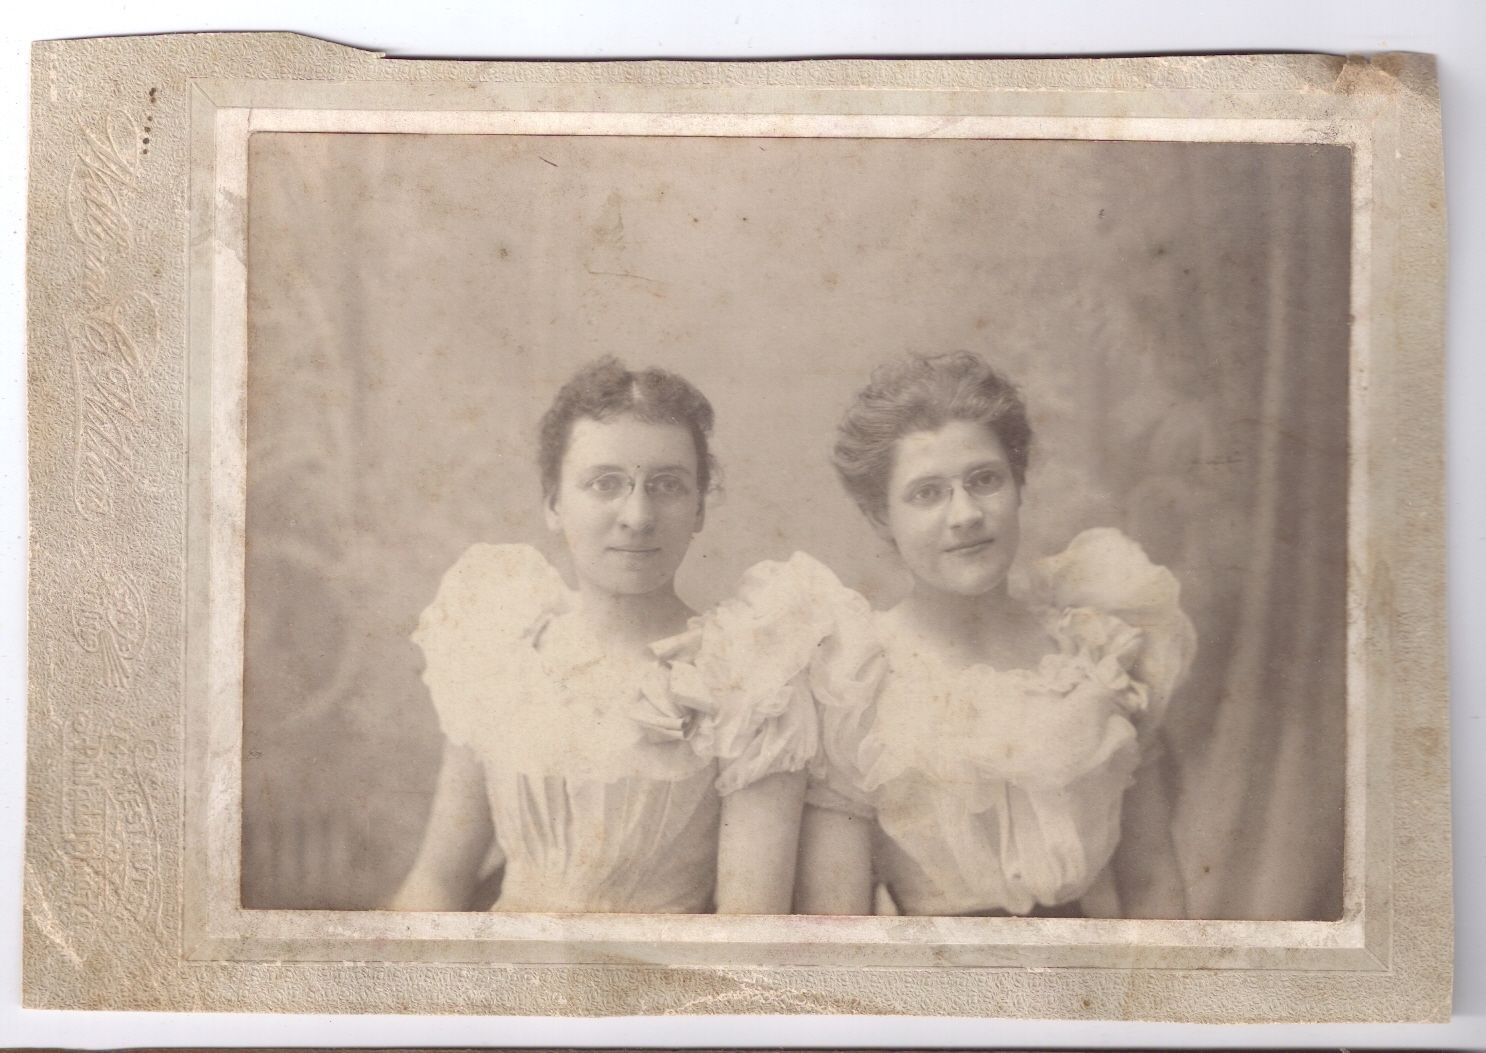 Antique Photo Women Glasses Frilly Dresses ID'd Mrs Will McCallister Fashion